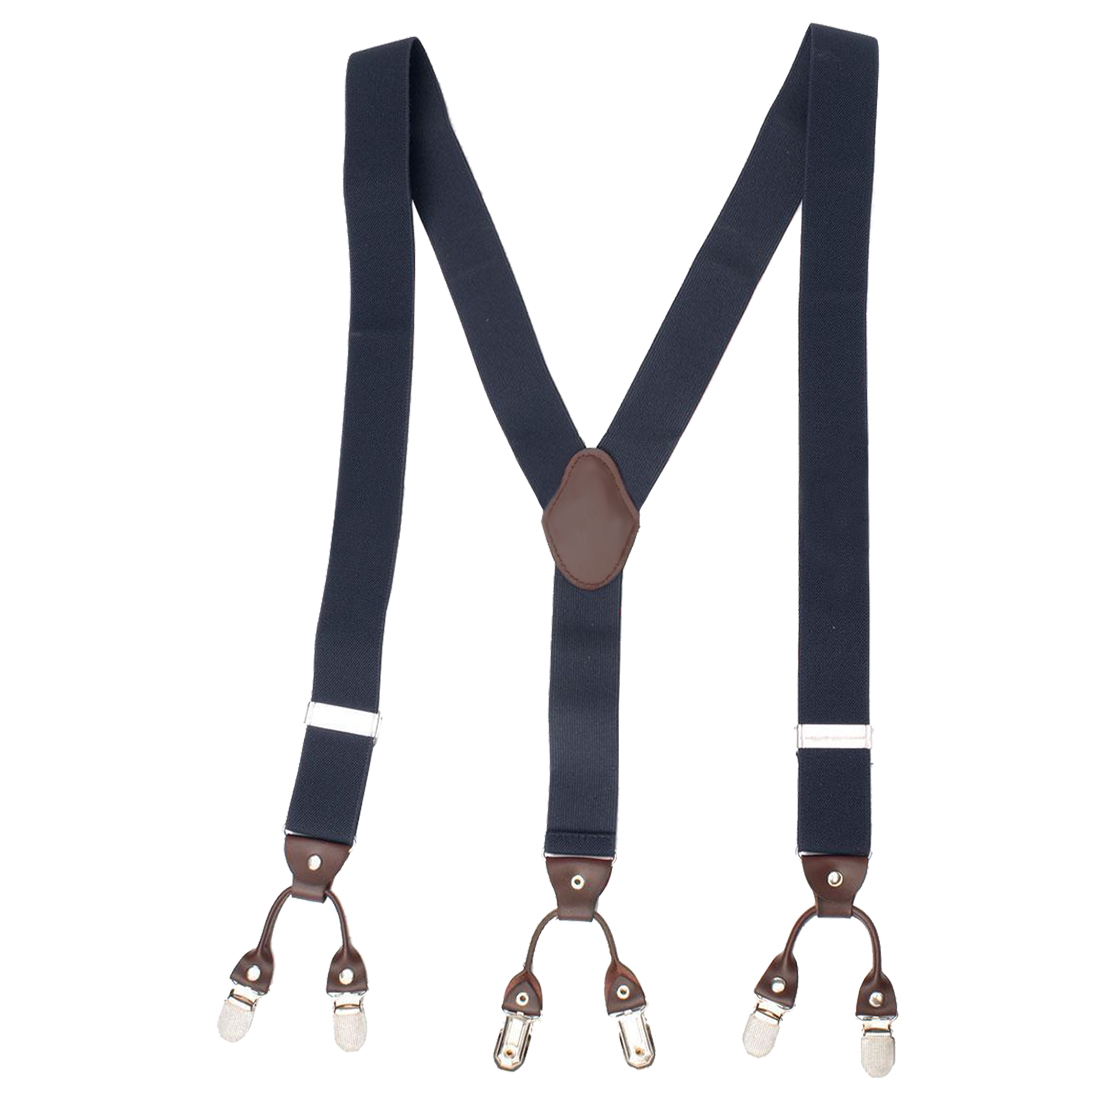 Men Trouser Suspender Adjustable Y-Shape Elastic Braces Buckle Color:Navy